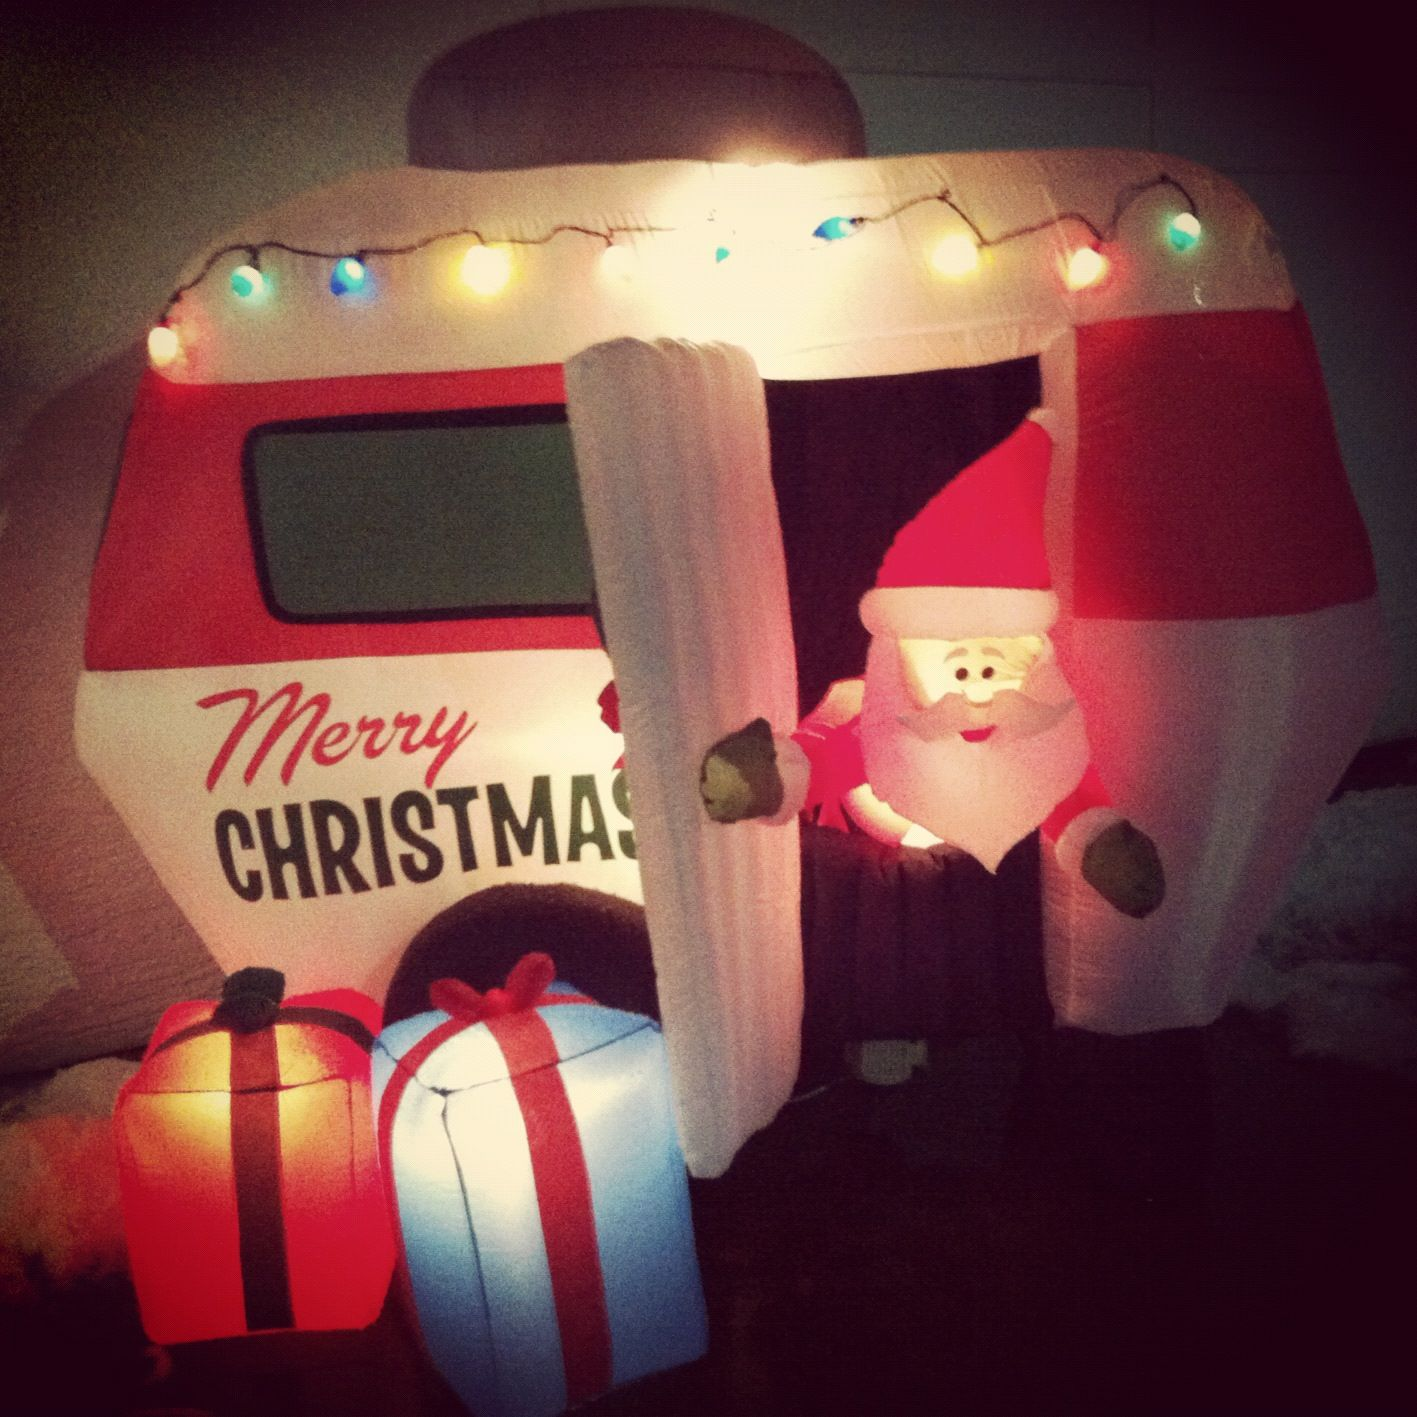 Santa visited us this Christmas! He came with his RV and stayed a while, we must have been extra good!